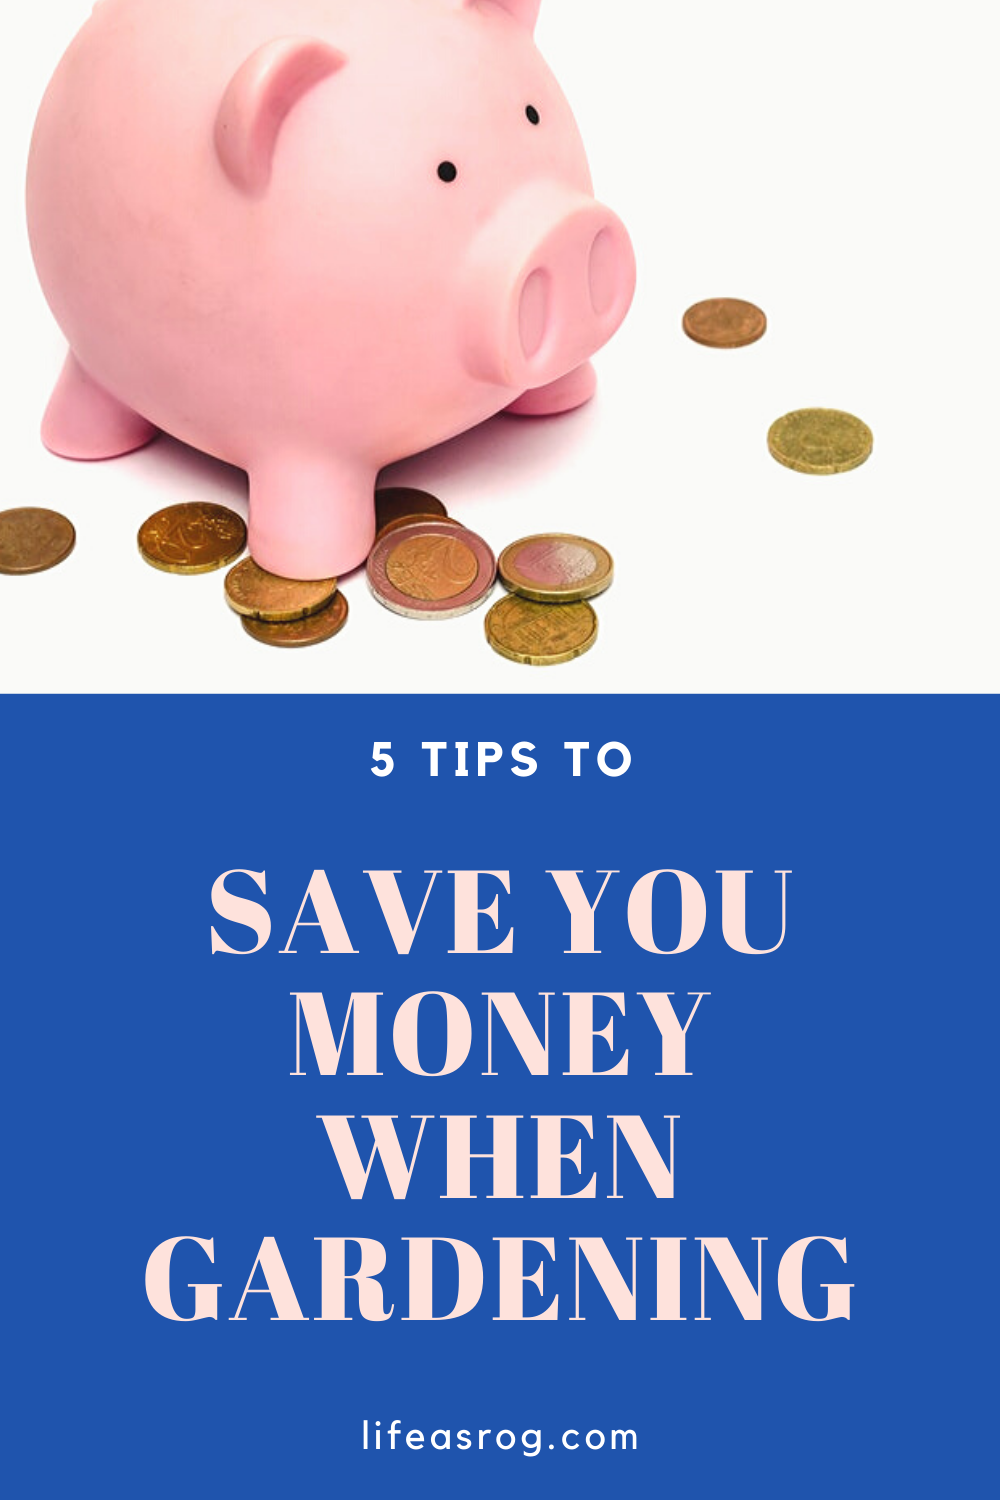 5 Tips to Save You Money when Gardening